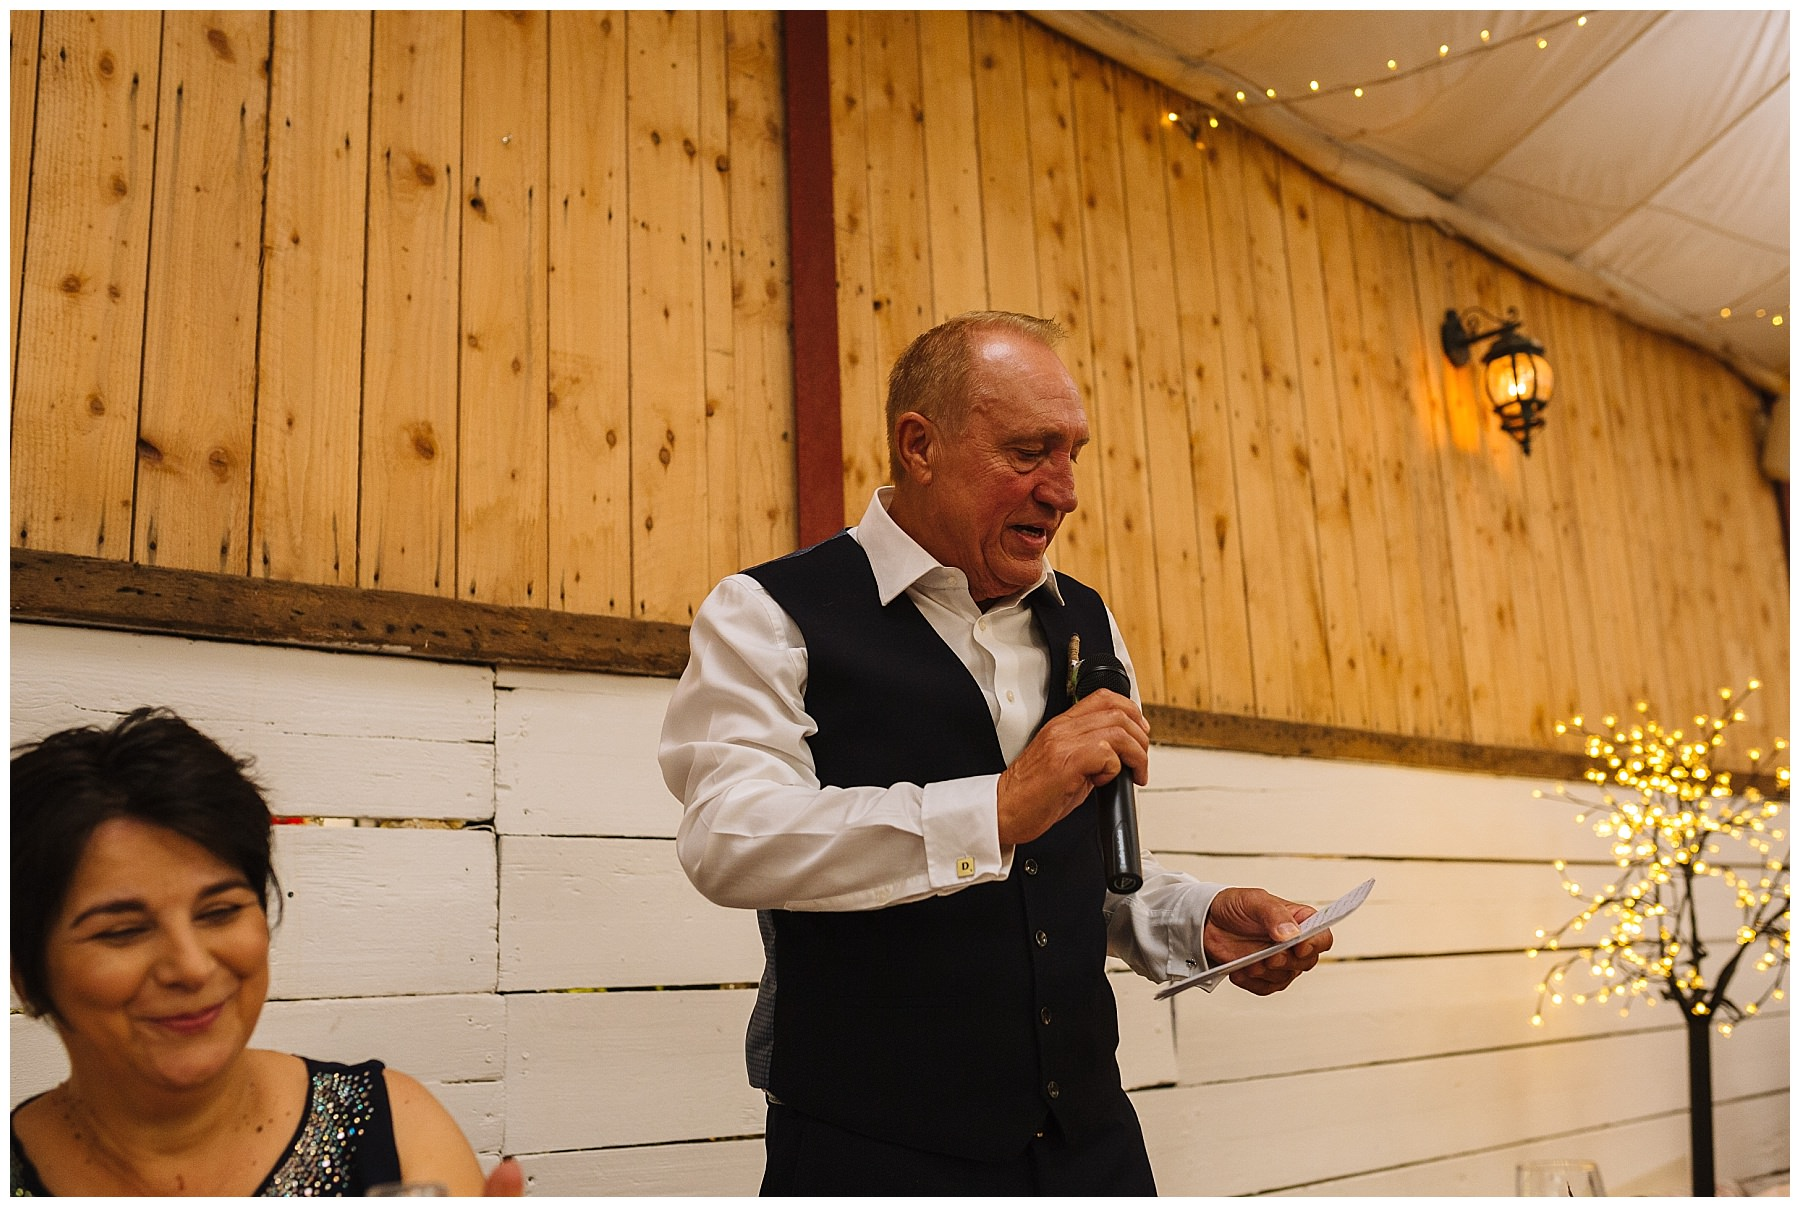 speech given by father of the bride